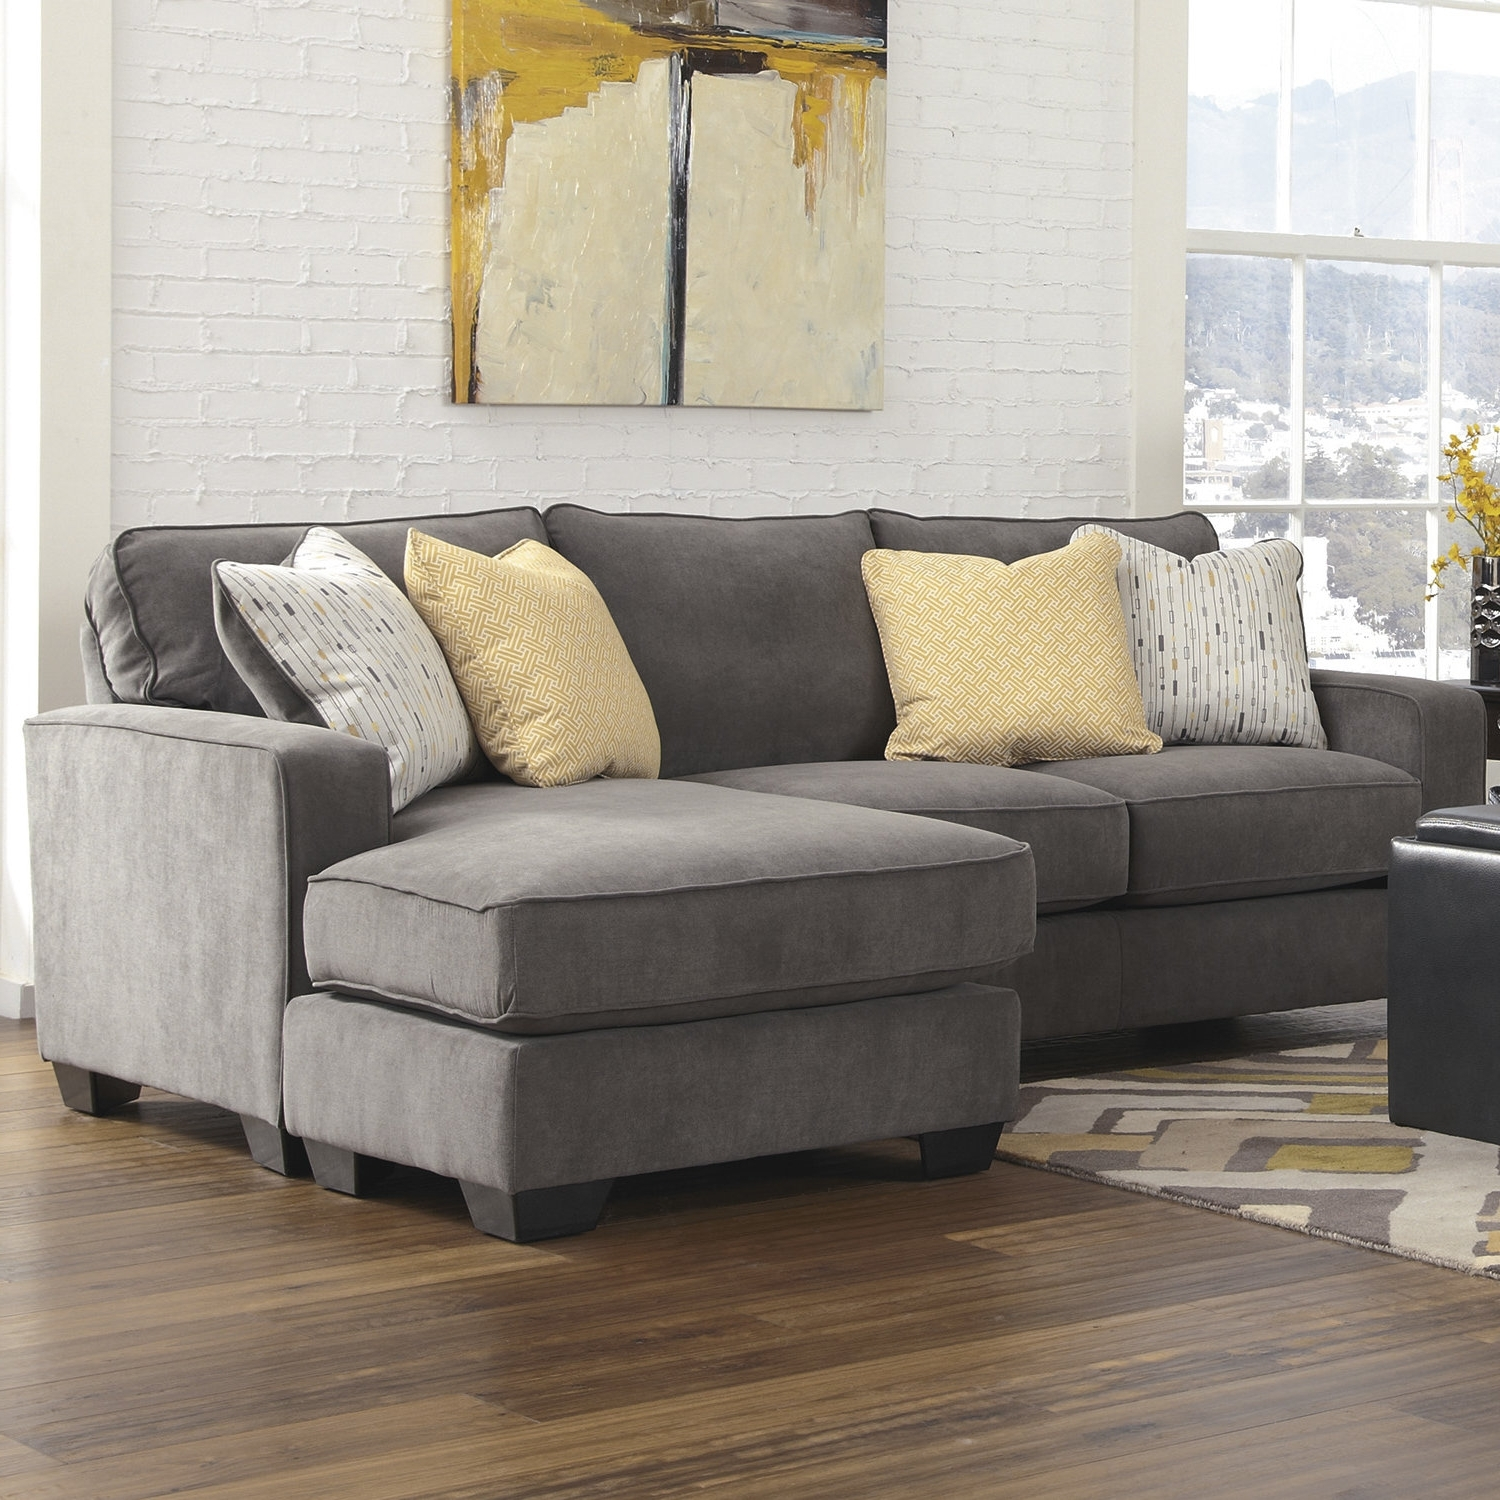 2017 Unique Sectional Sofas Inside Sectional Sofas (View 2 of 15)